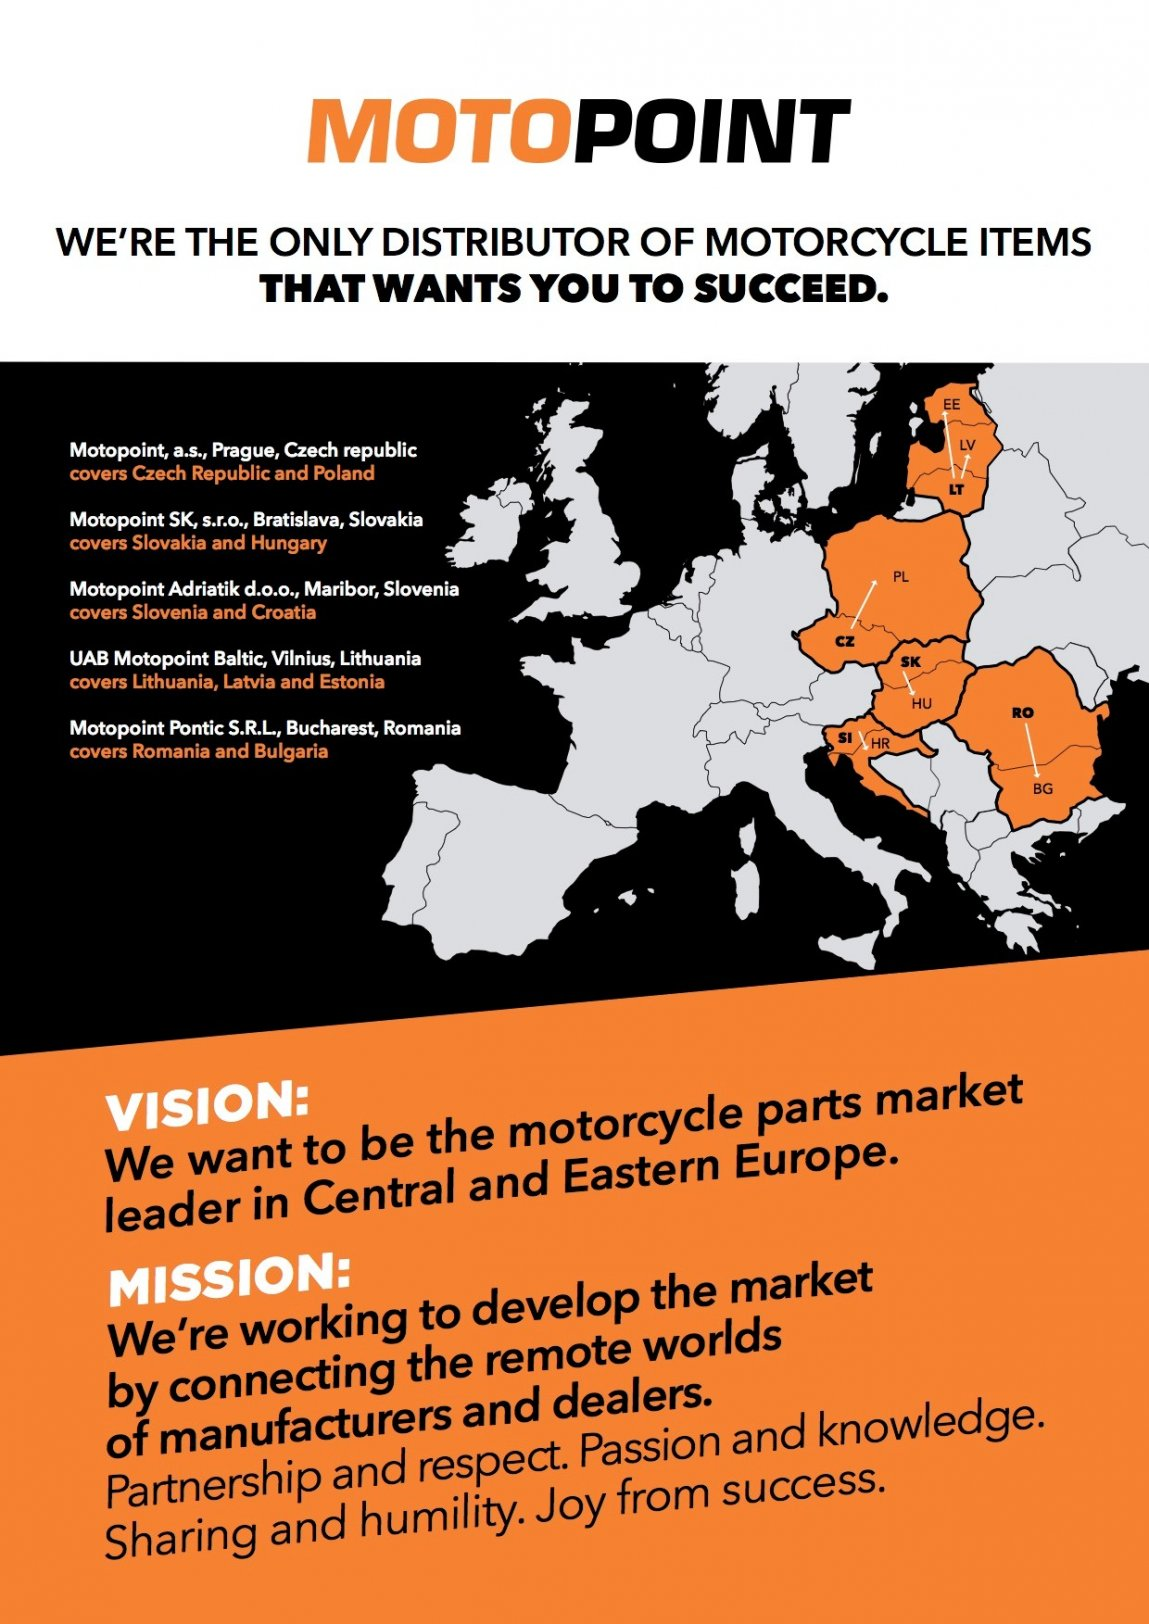 Motopoint - our mission / vision